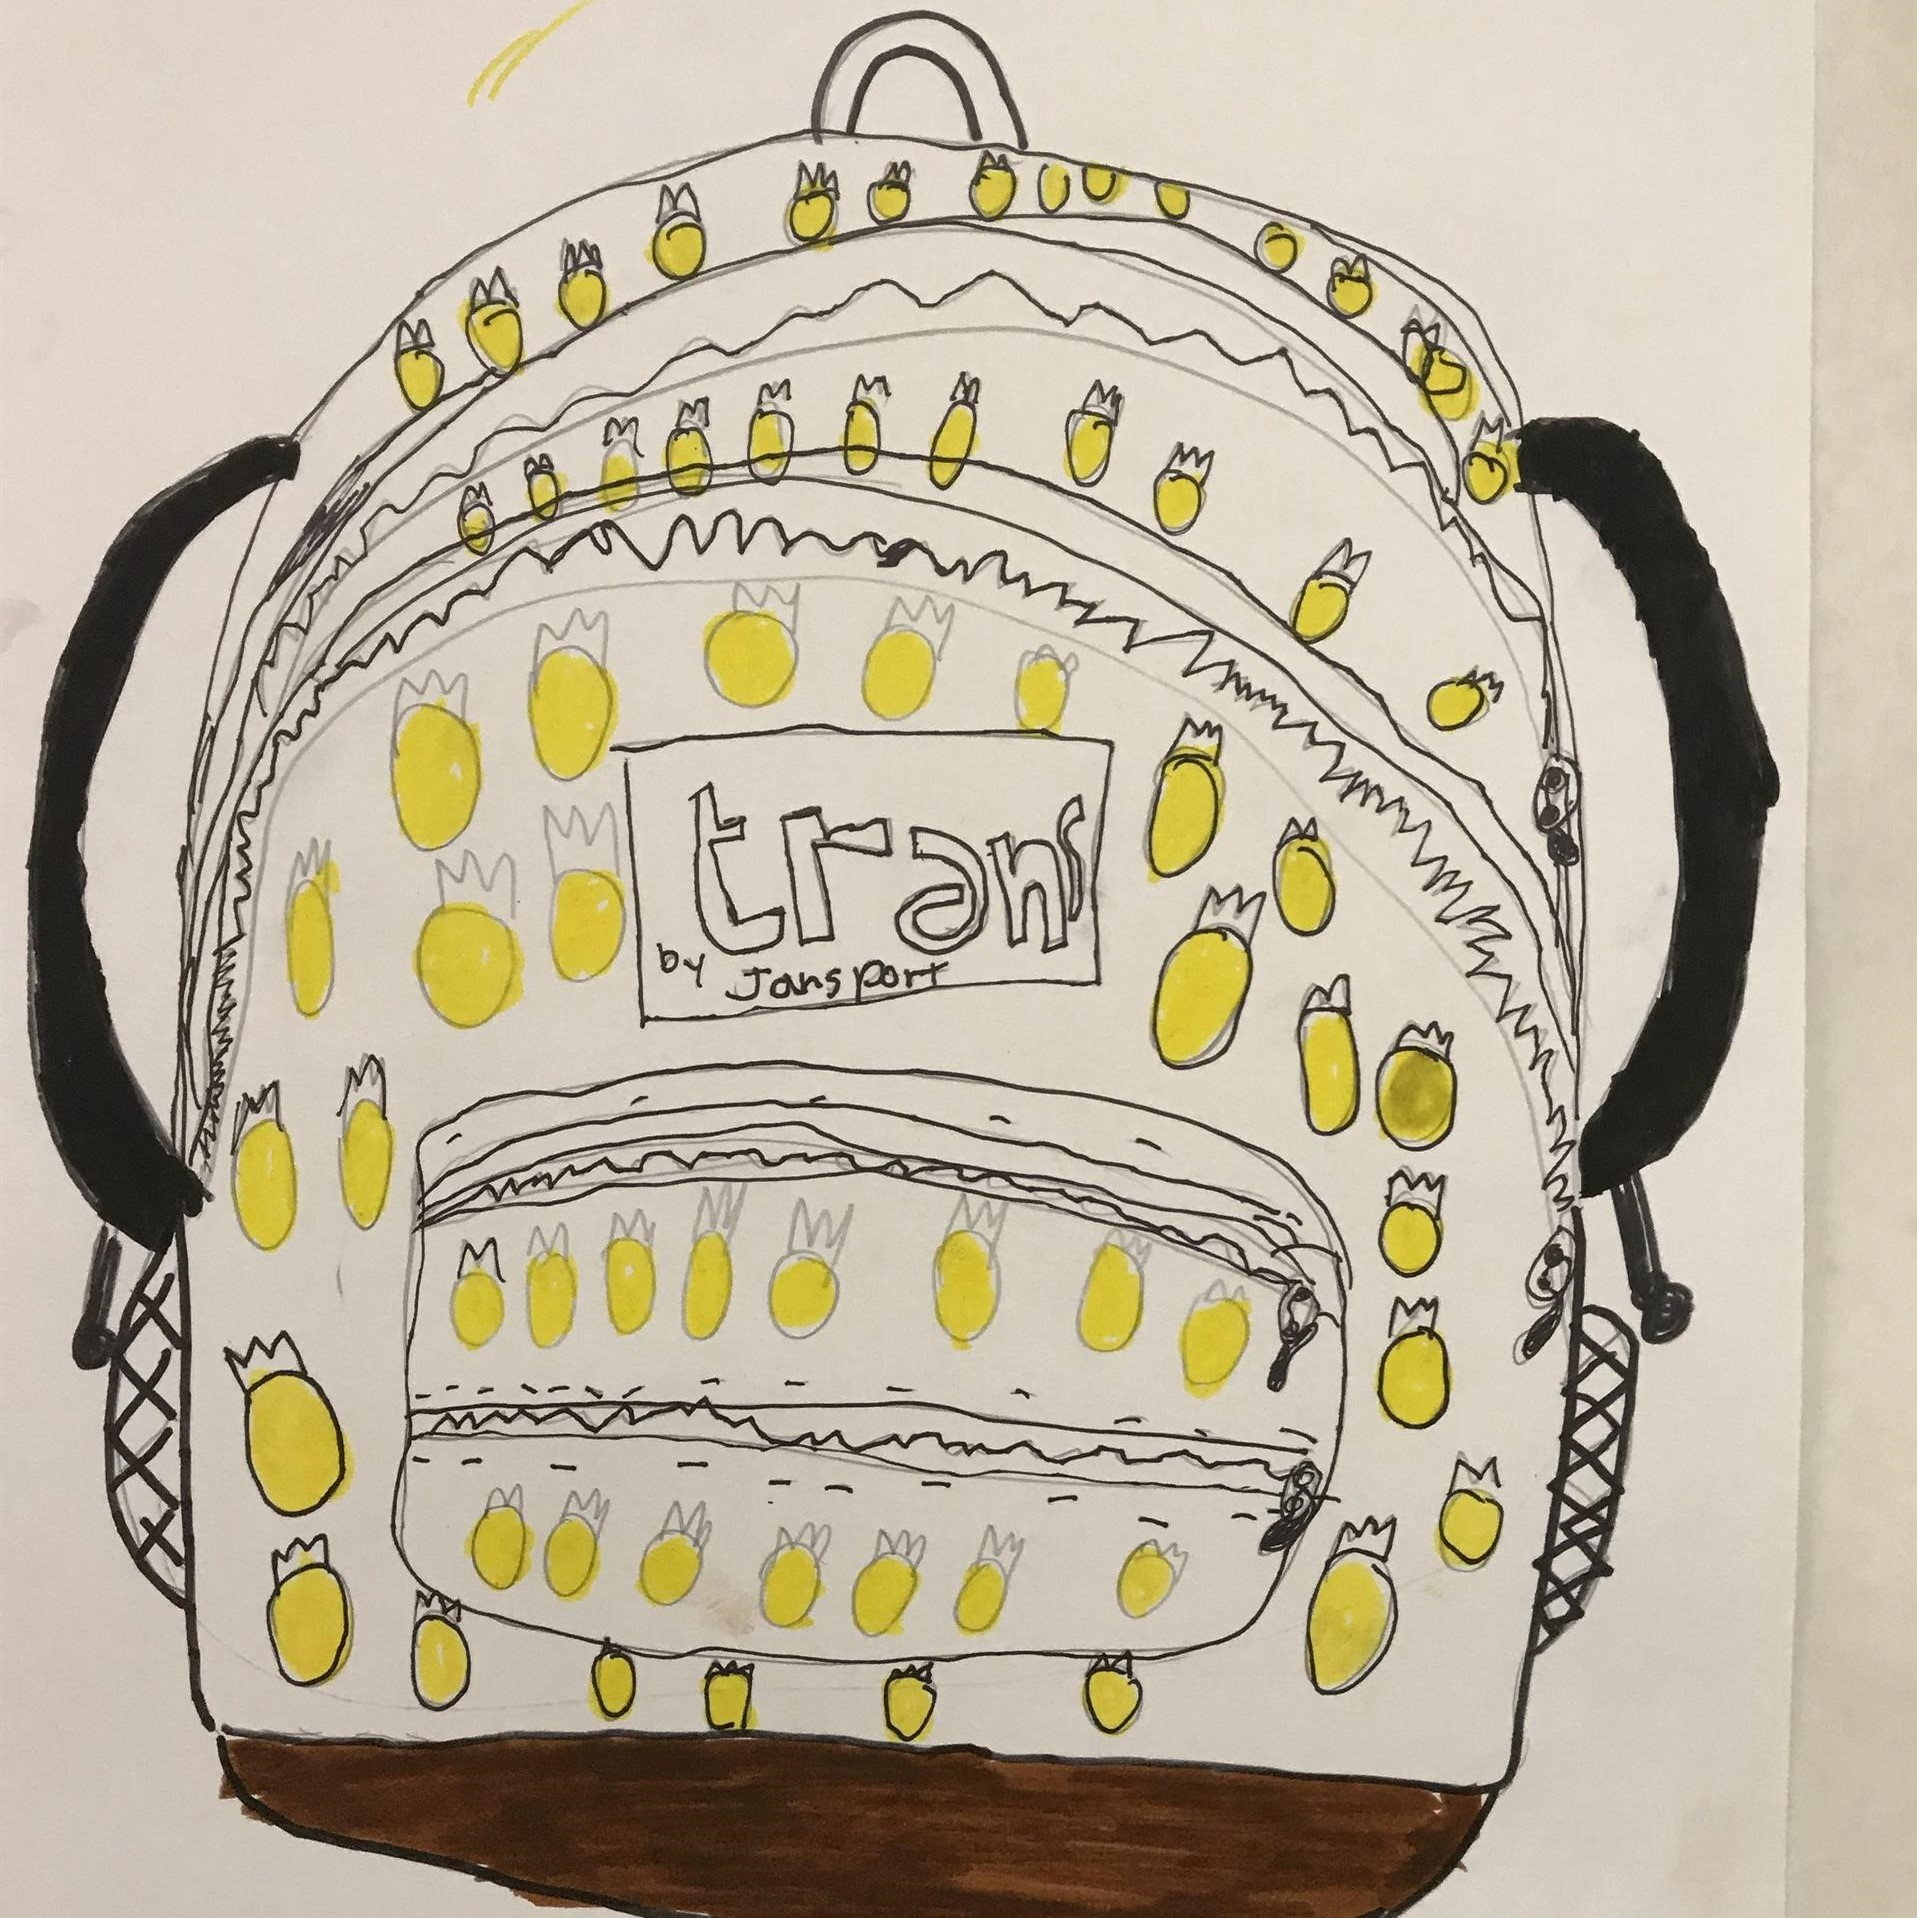 Third Grade Backpack Design